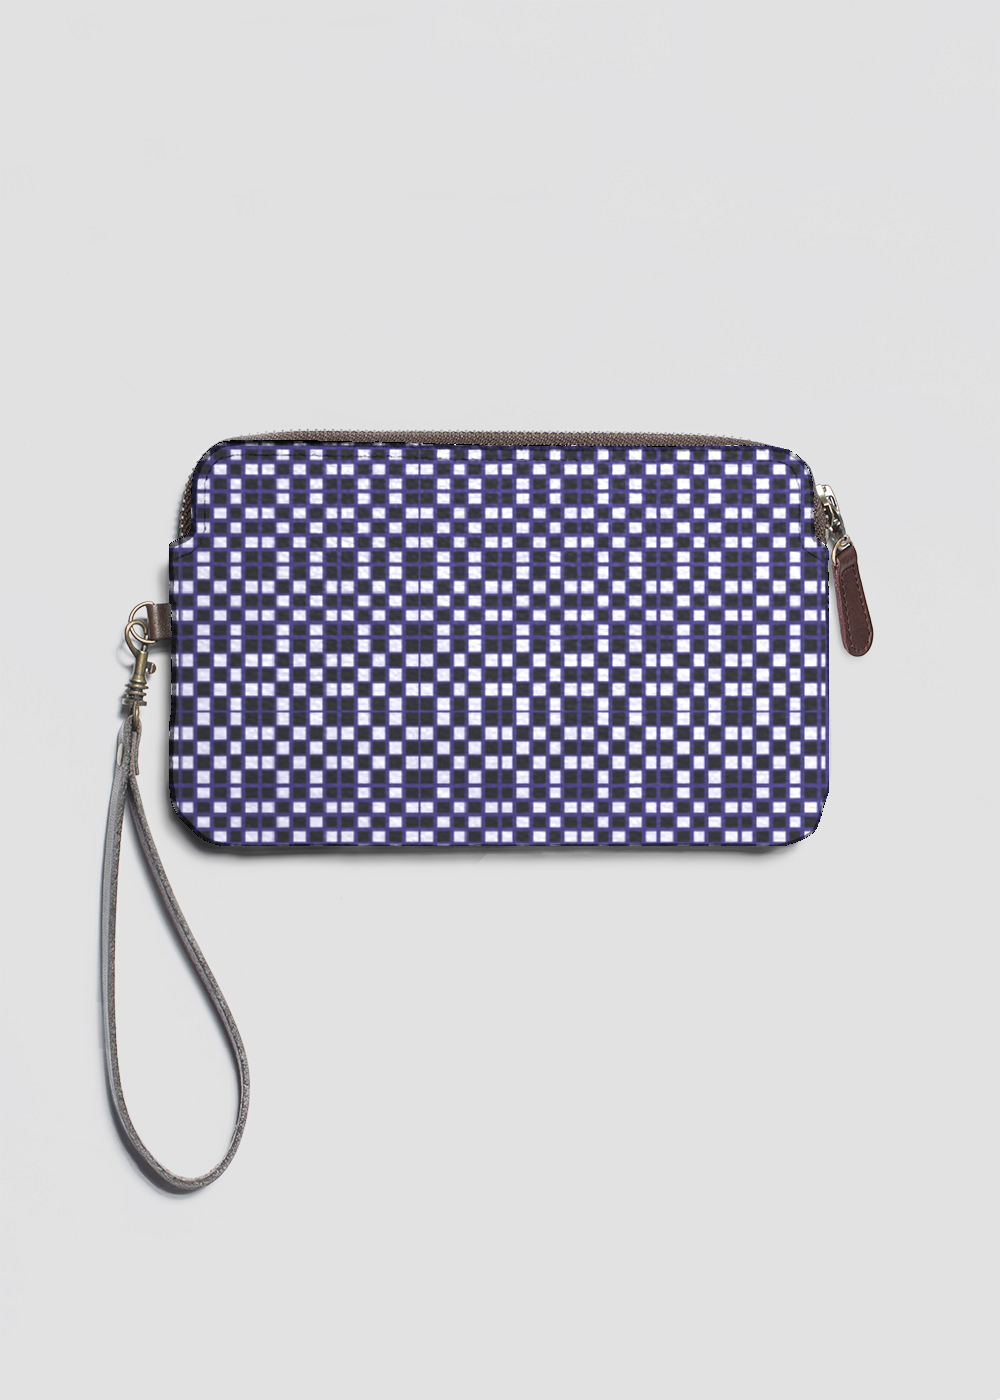 Leather Statement Clutch - Insect Study on Ledger by VIDA VIDA Visit Sale Online Fake For Sale Cheap Sale Wiki uEGPqe9d3